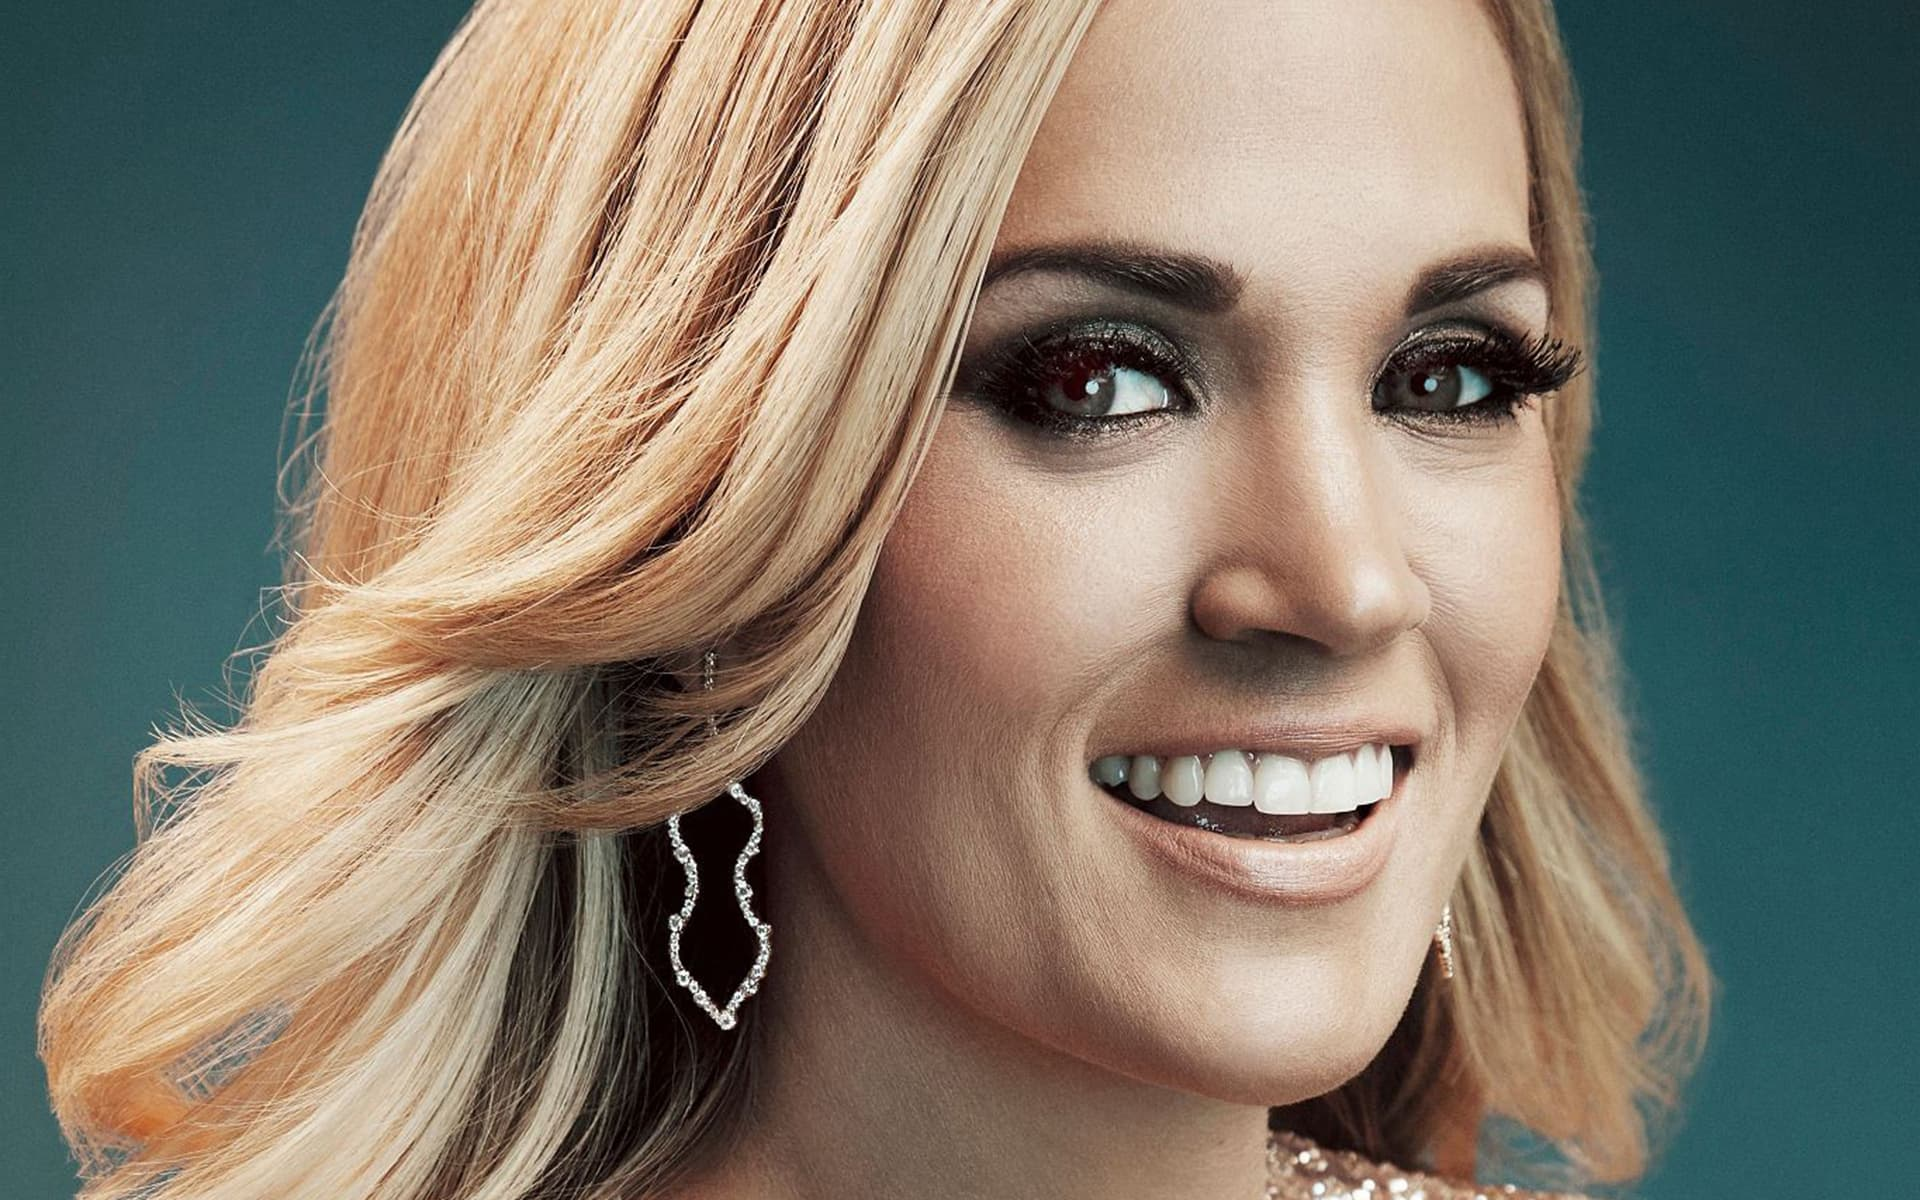 Carrie Underwood Wallpapers, Pictures, Images for Desktop HD